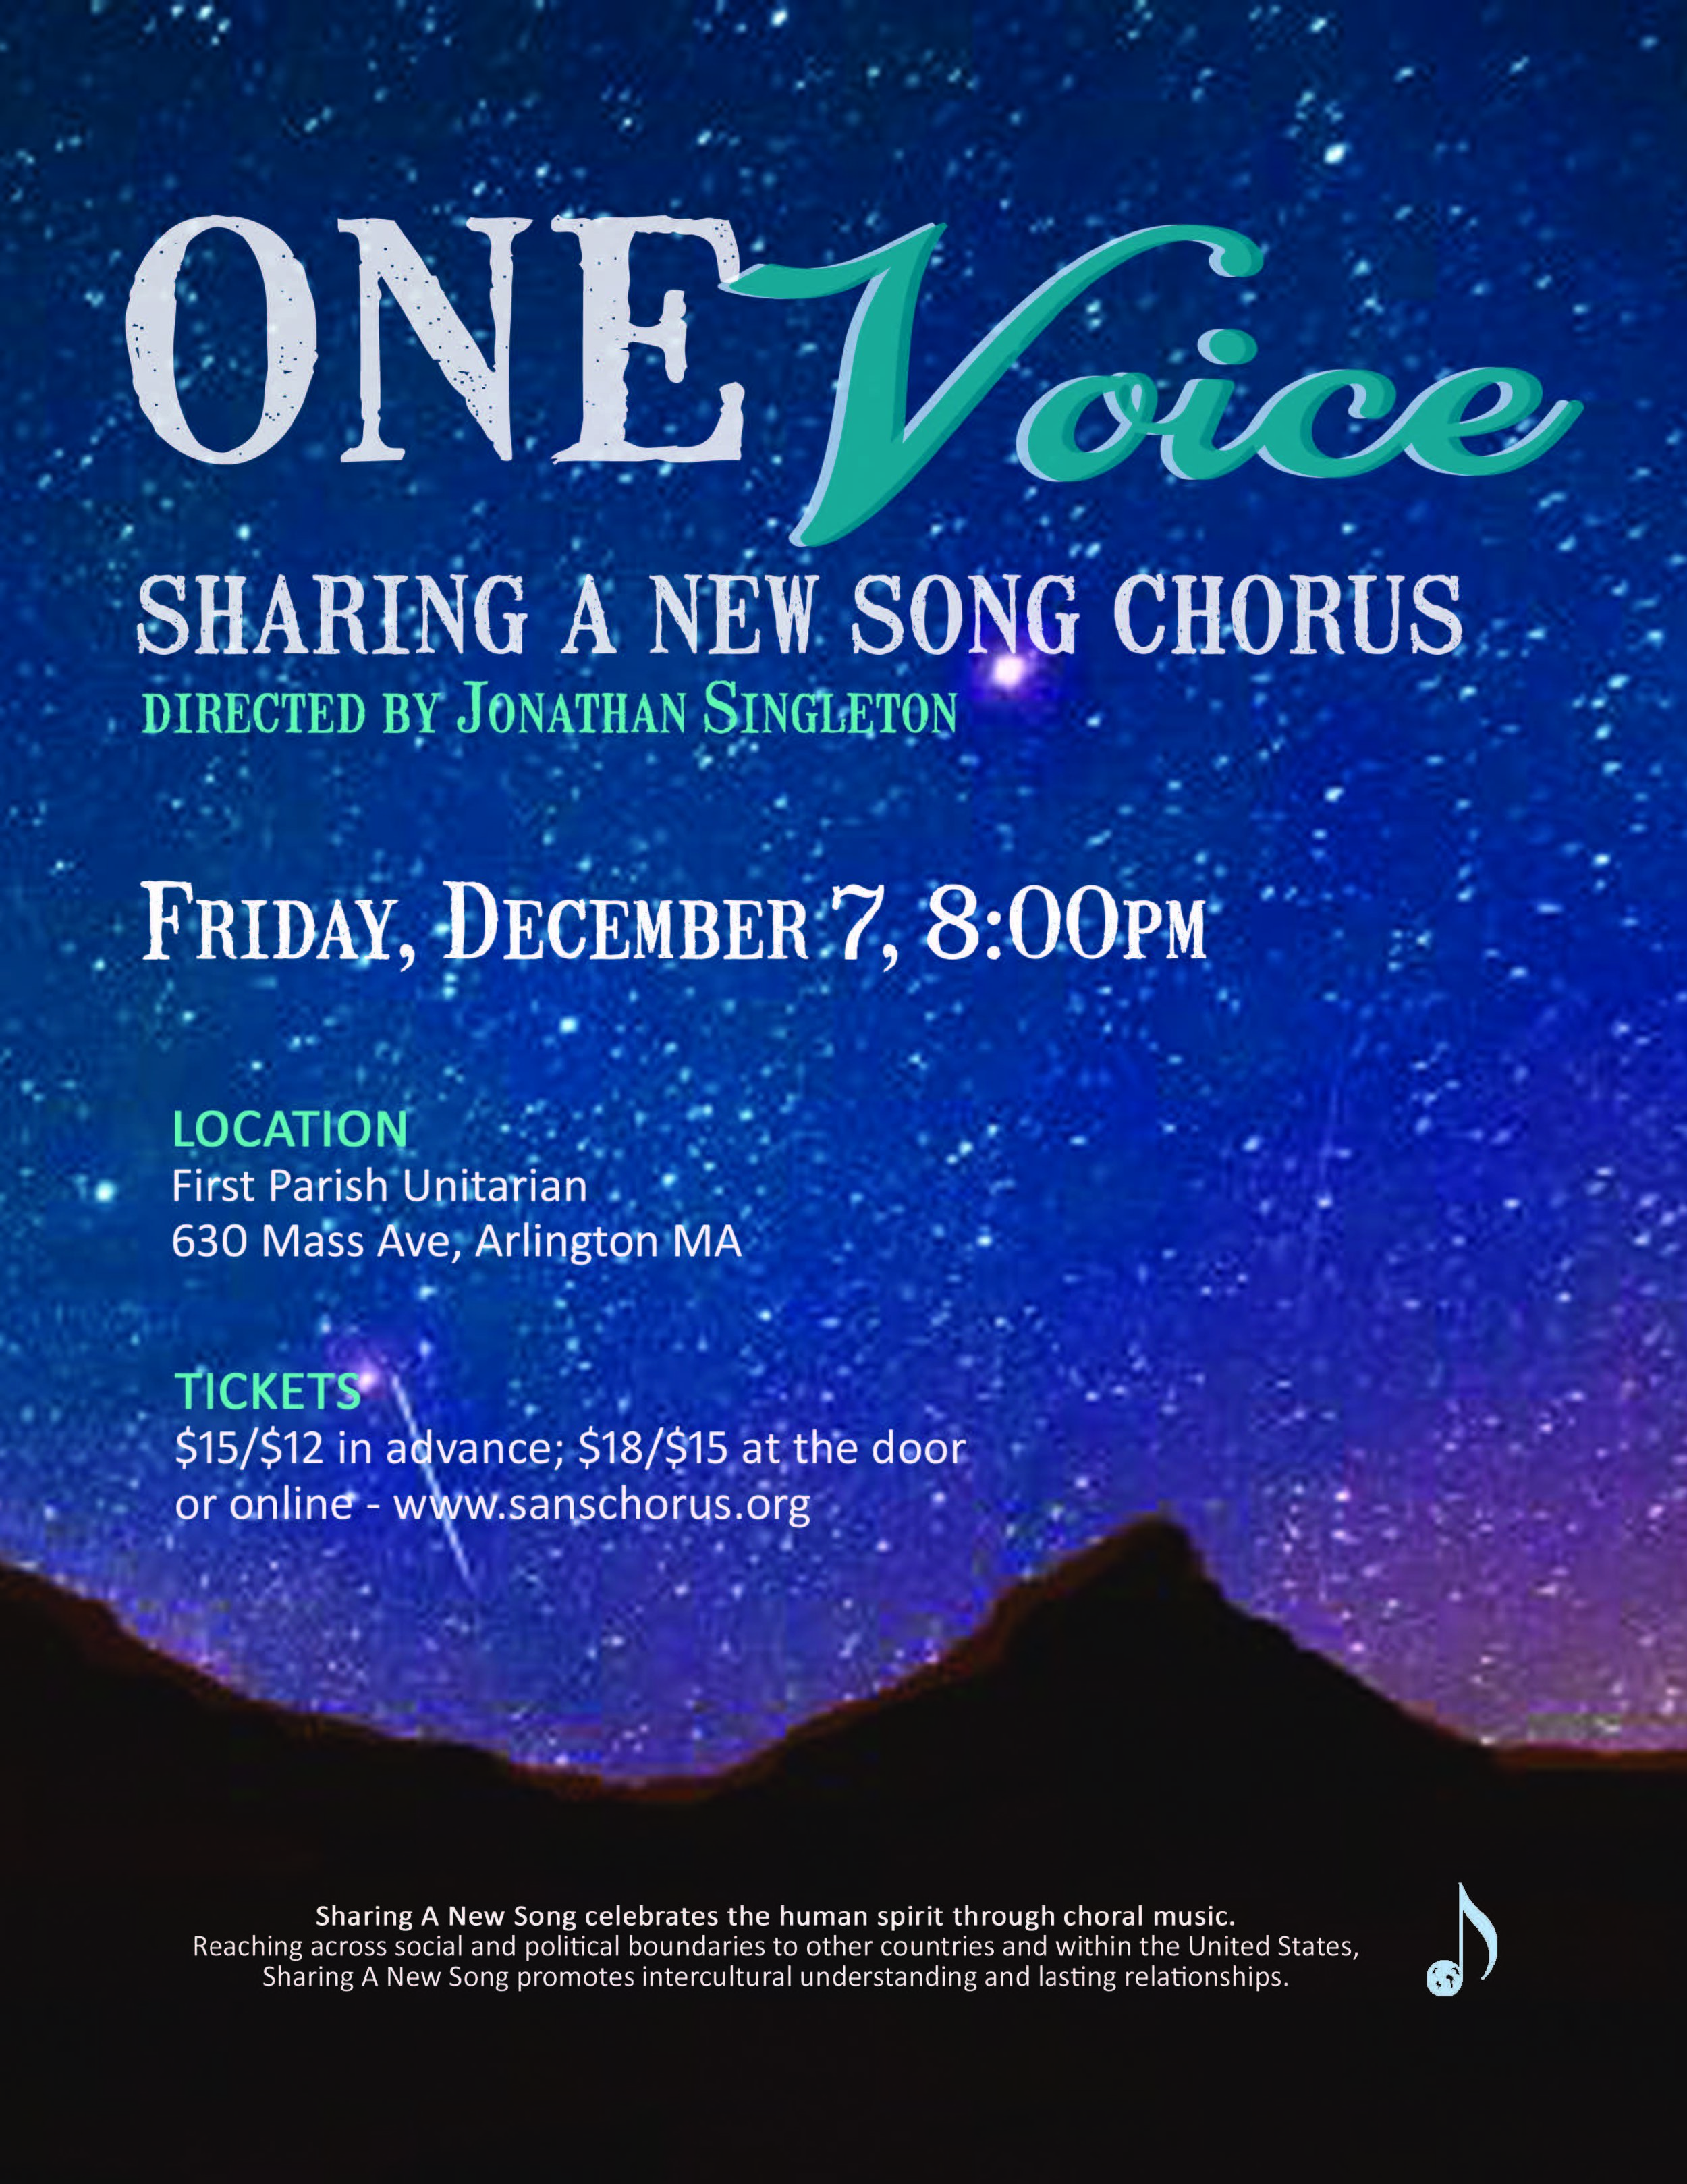 One Voice poster 8.jpg